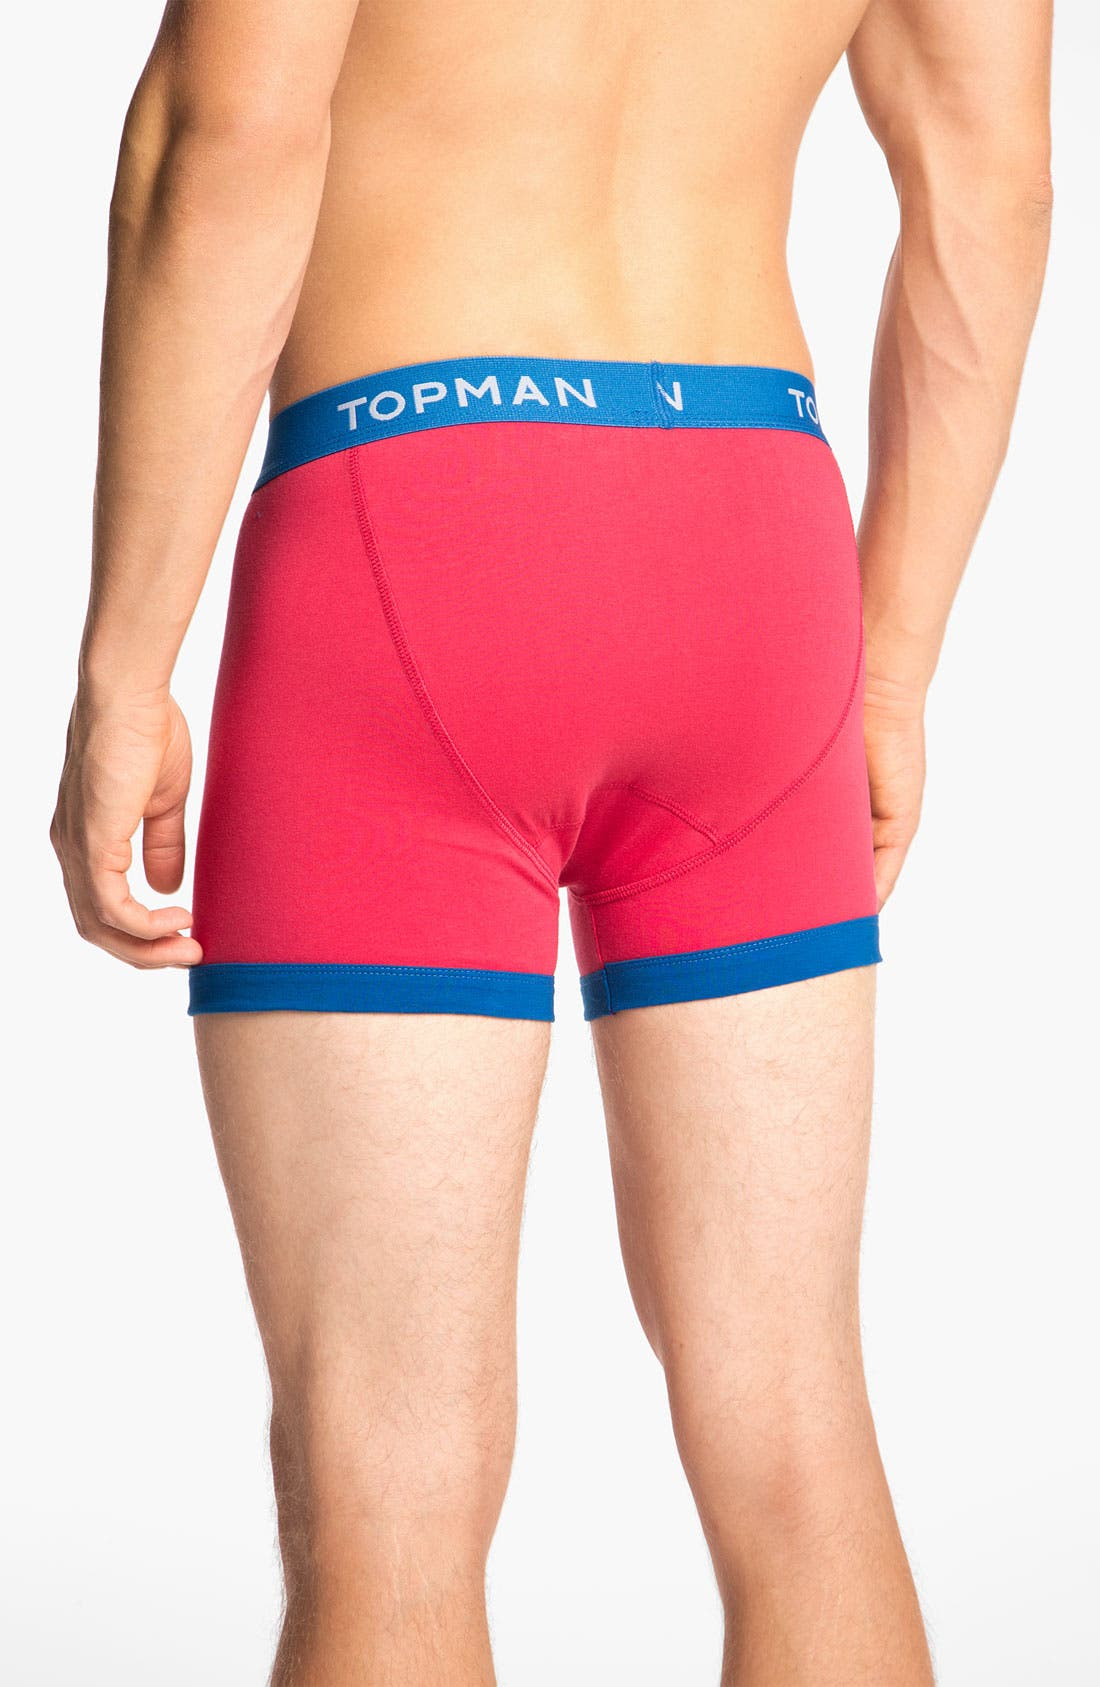 Alternate Image 3  - Topman 'Vintage Nautical' Boxer Briefs (3-Pack)